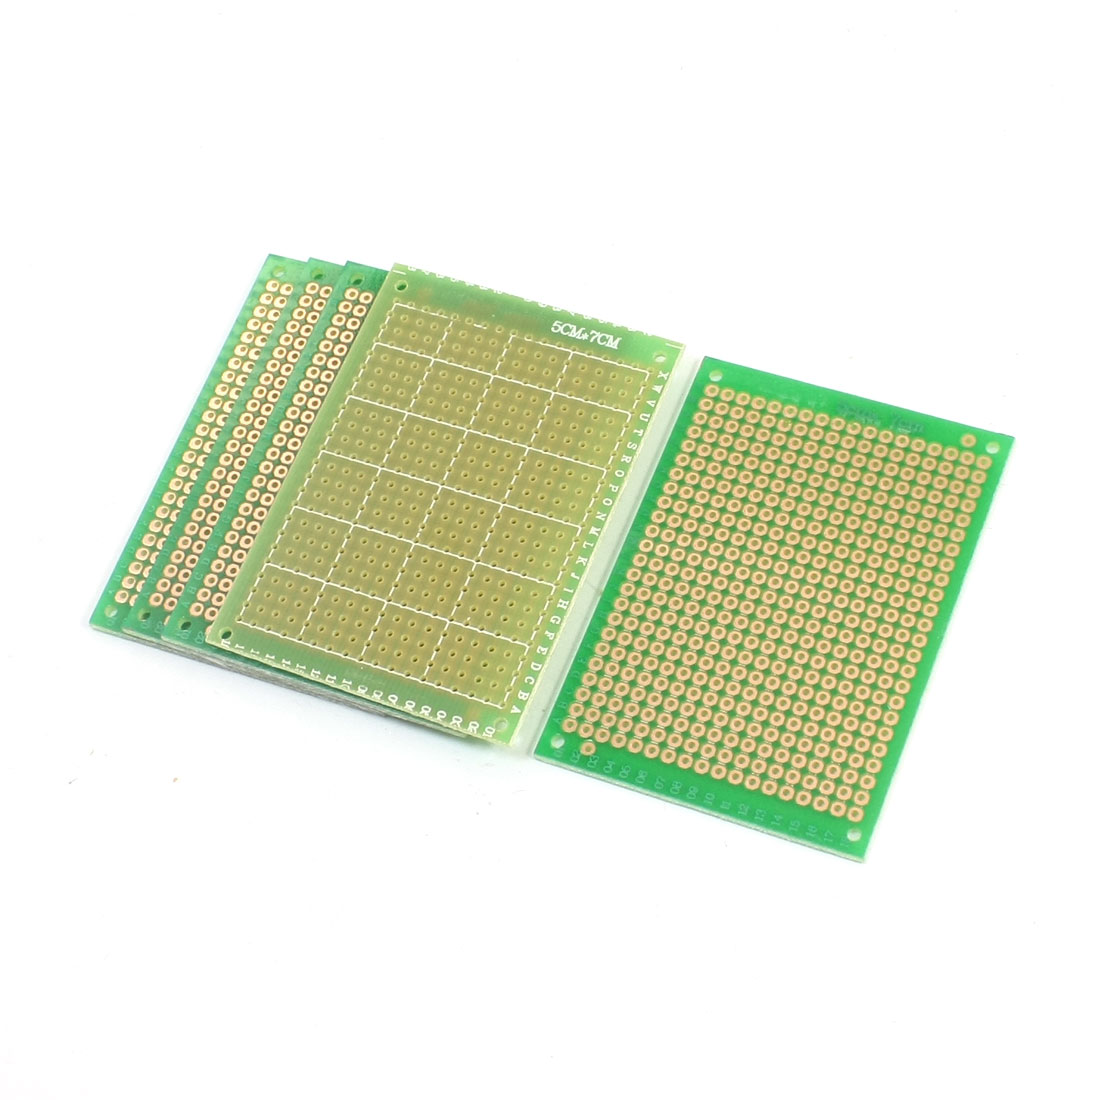 5pcs Prototyping Experiment Tester Matrix PCB Circuit Board 5x7 5 x 7cm